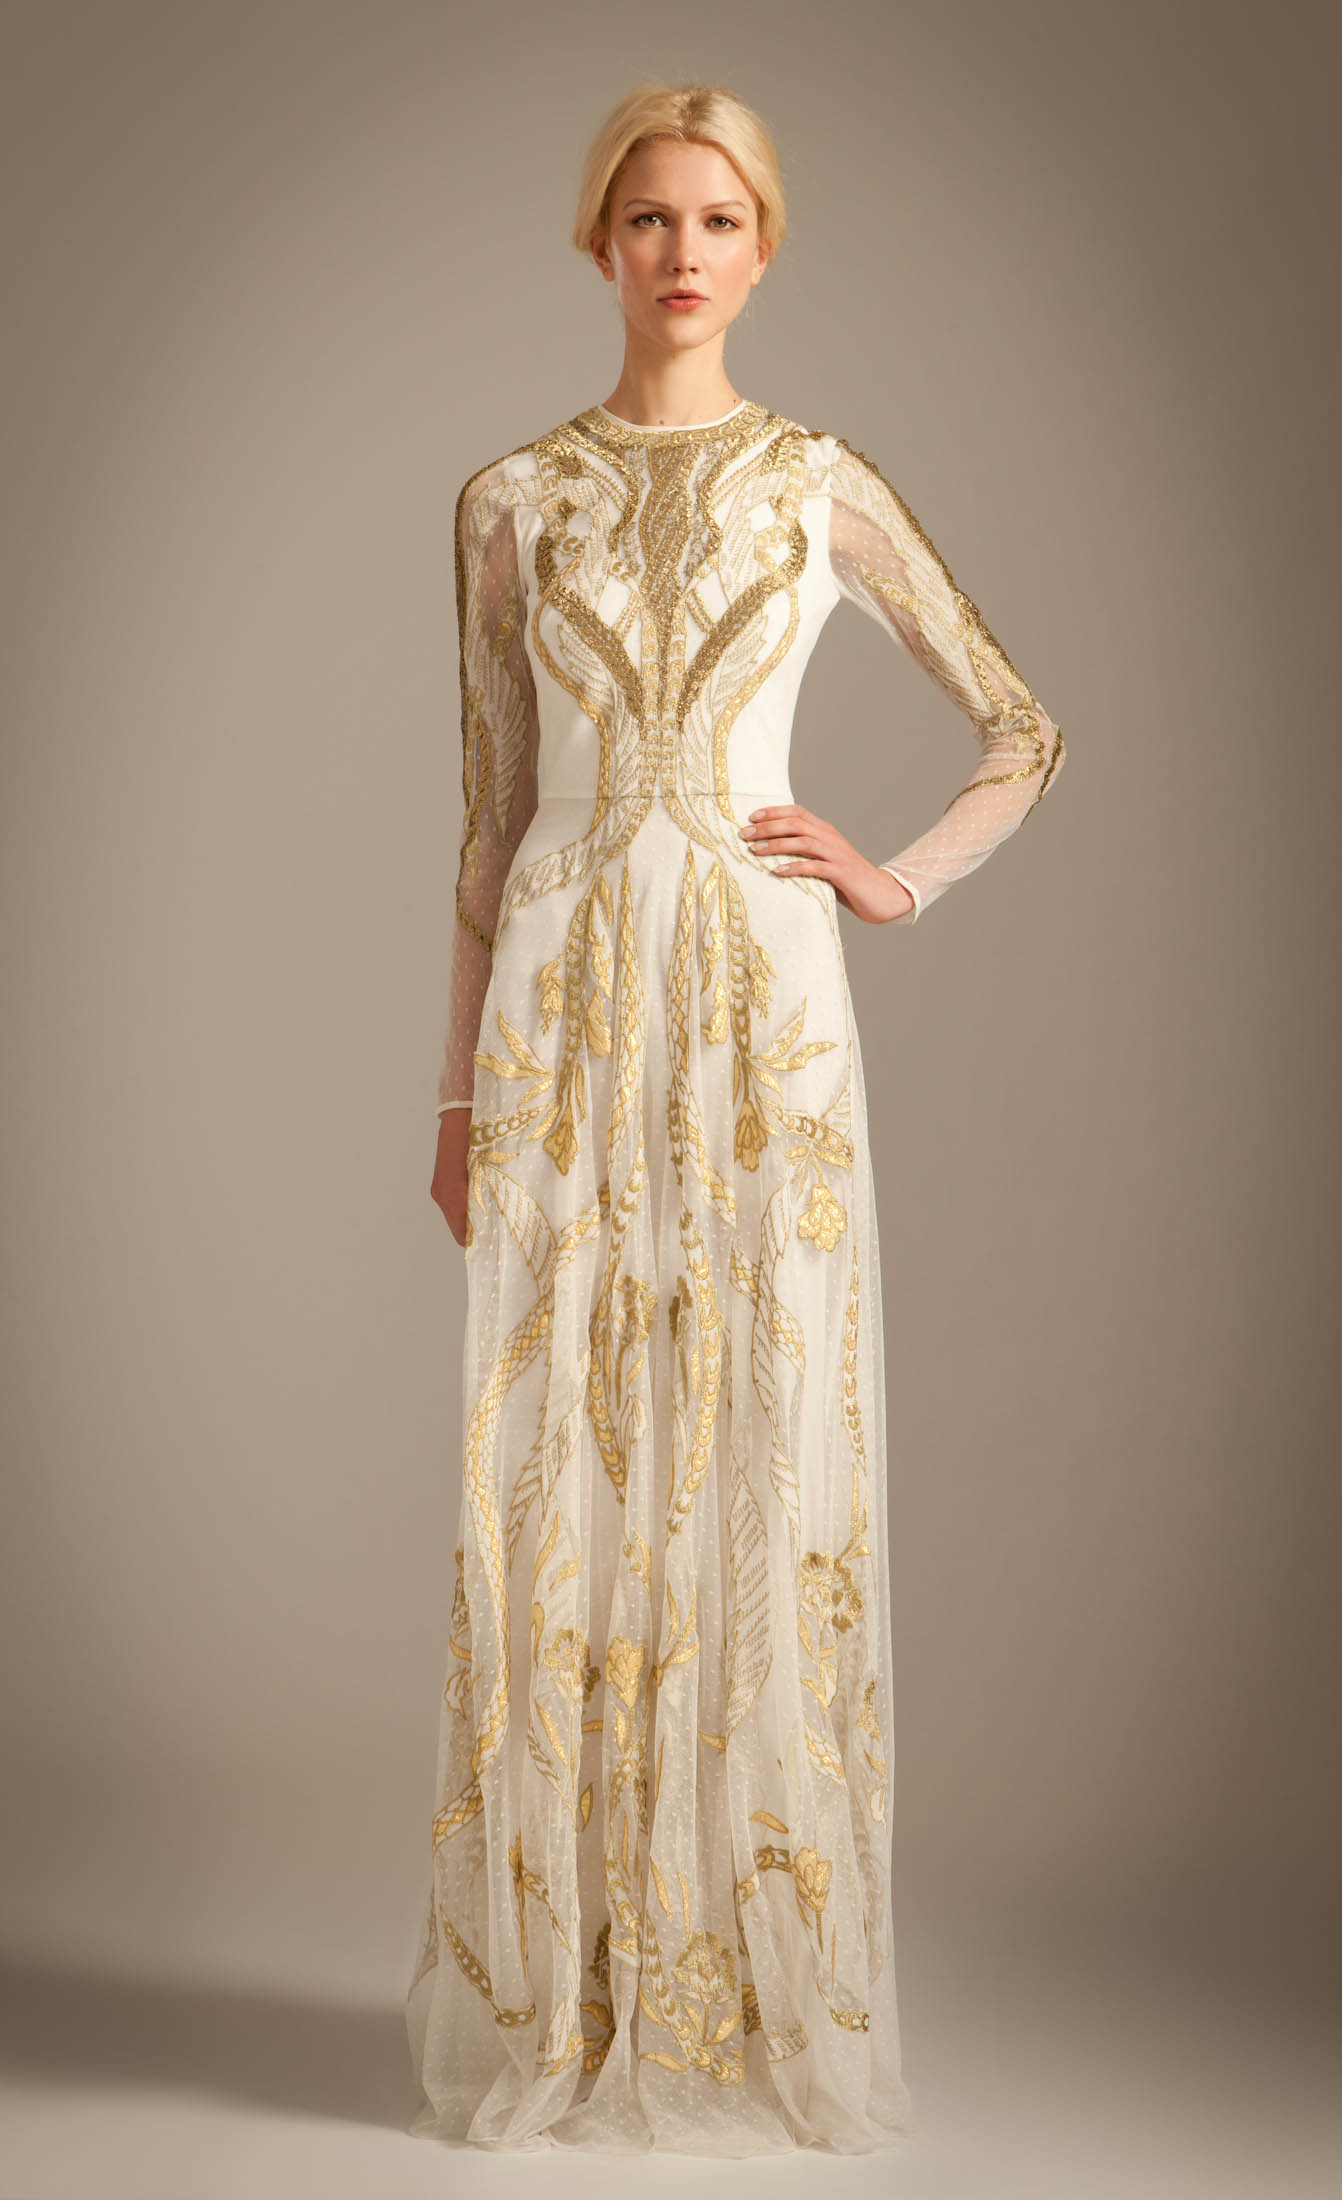 Lyst - Temperley London Long Aya Show Dress in Metallic